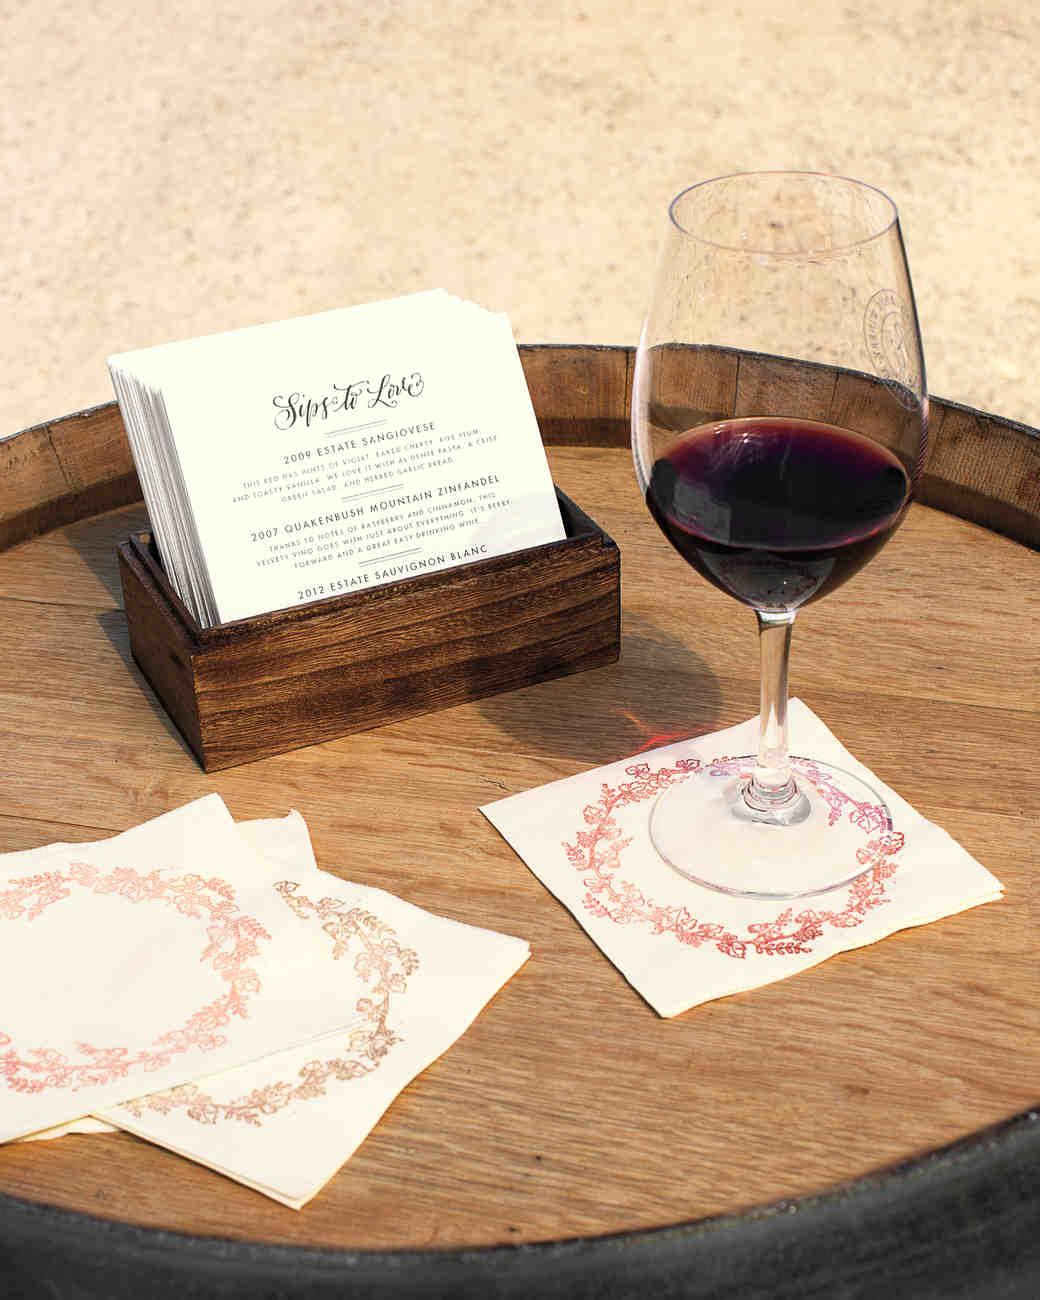 wine-cards-0048-comp-mwd110175.jpg